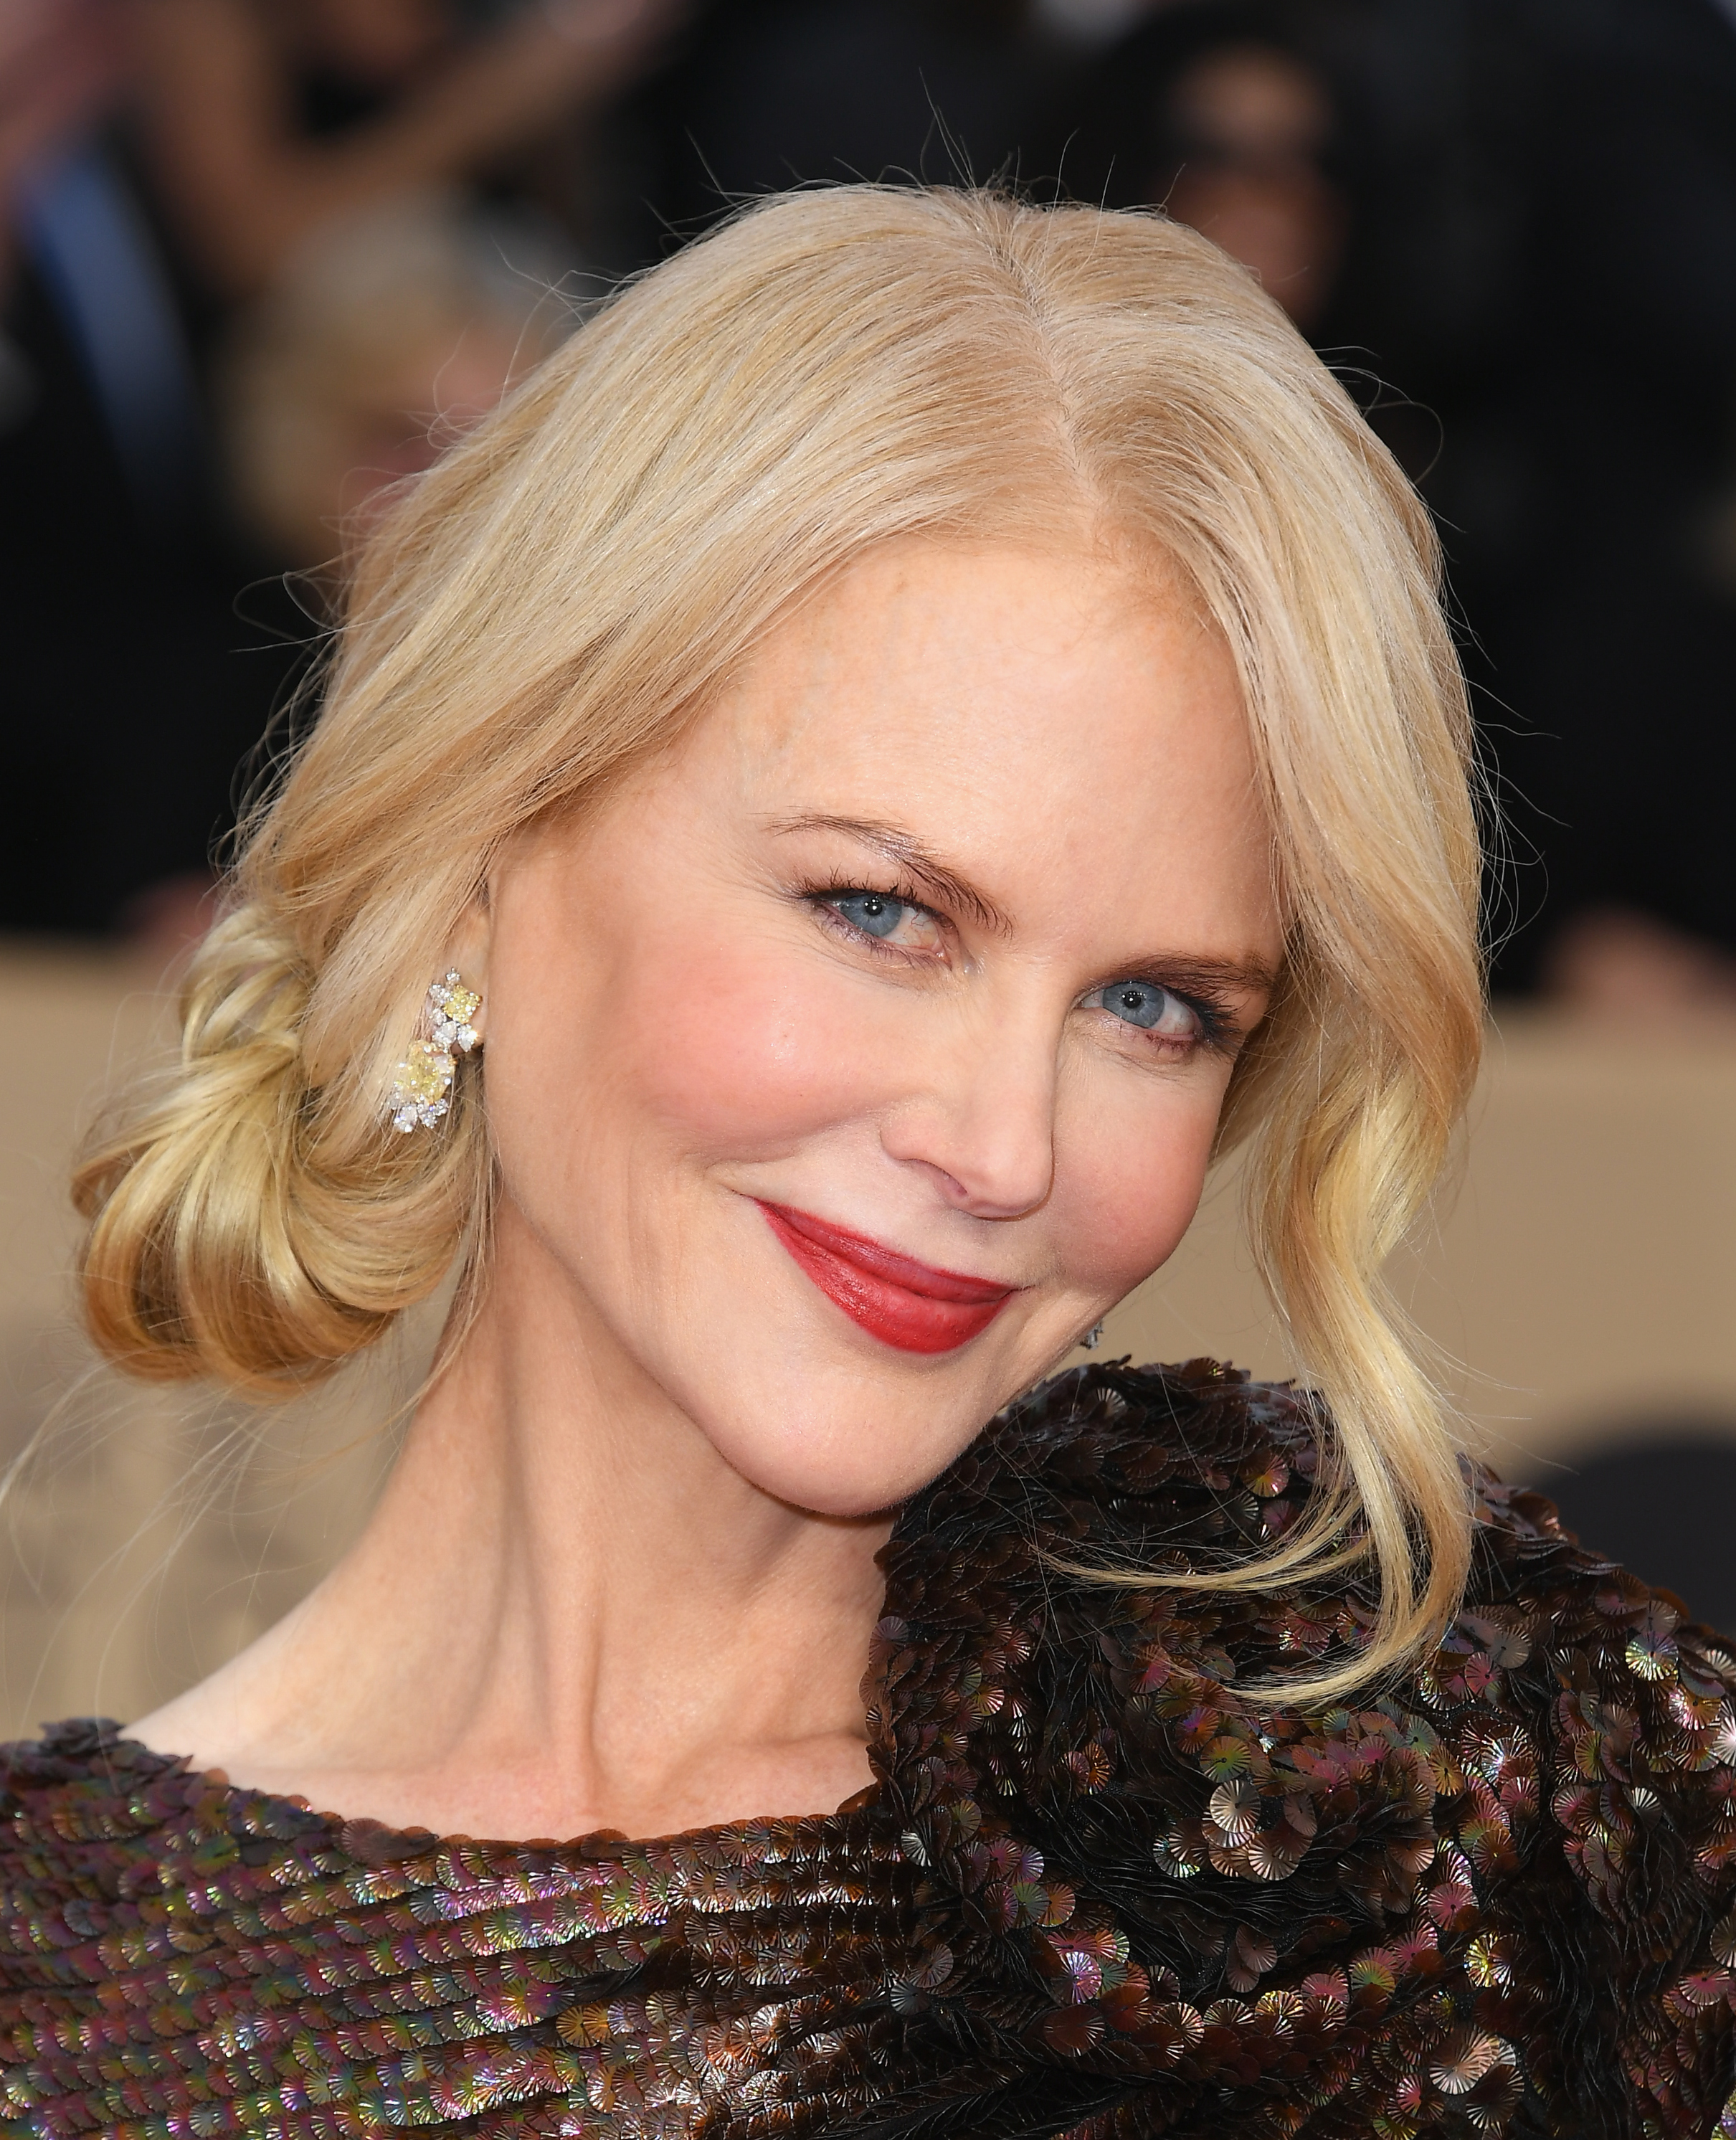 Watch Nicole Kidman speak out against ageism in Hollywood